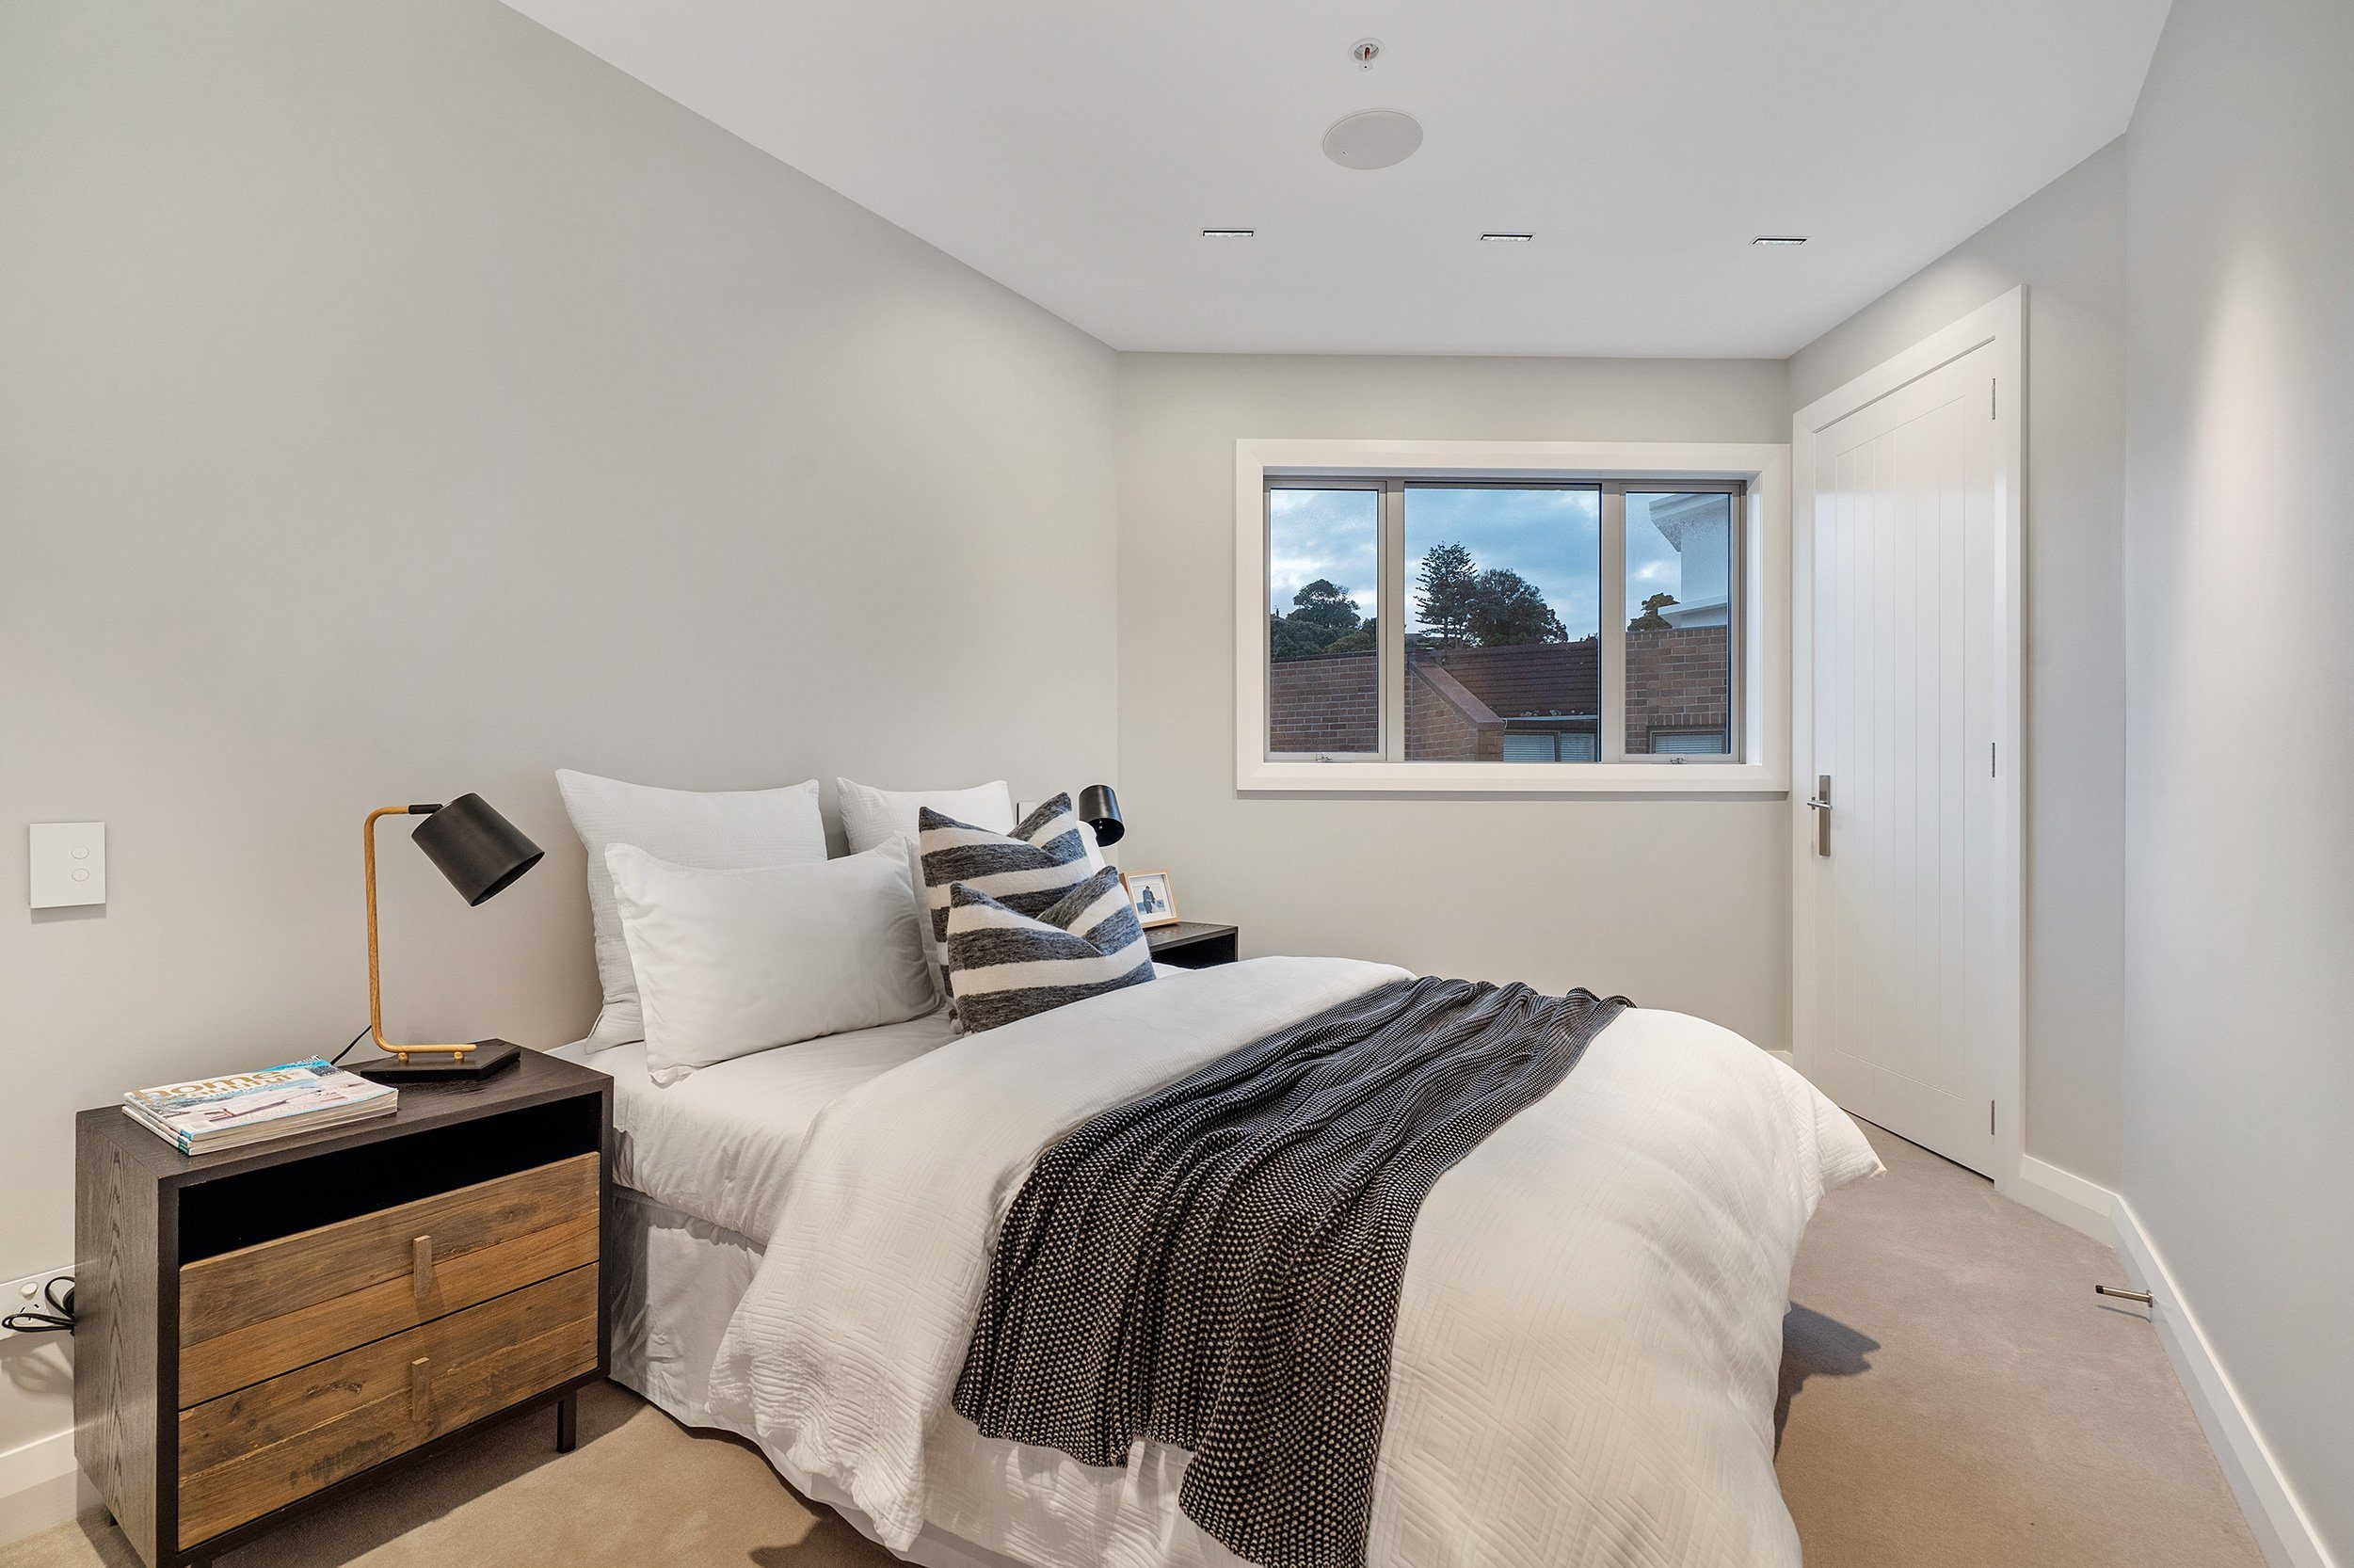 Bedroom with black and white throw